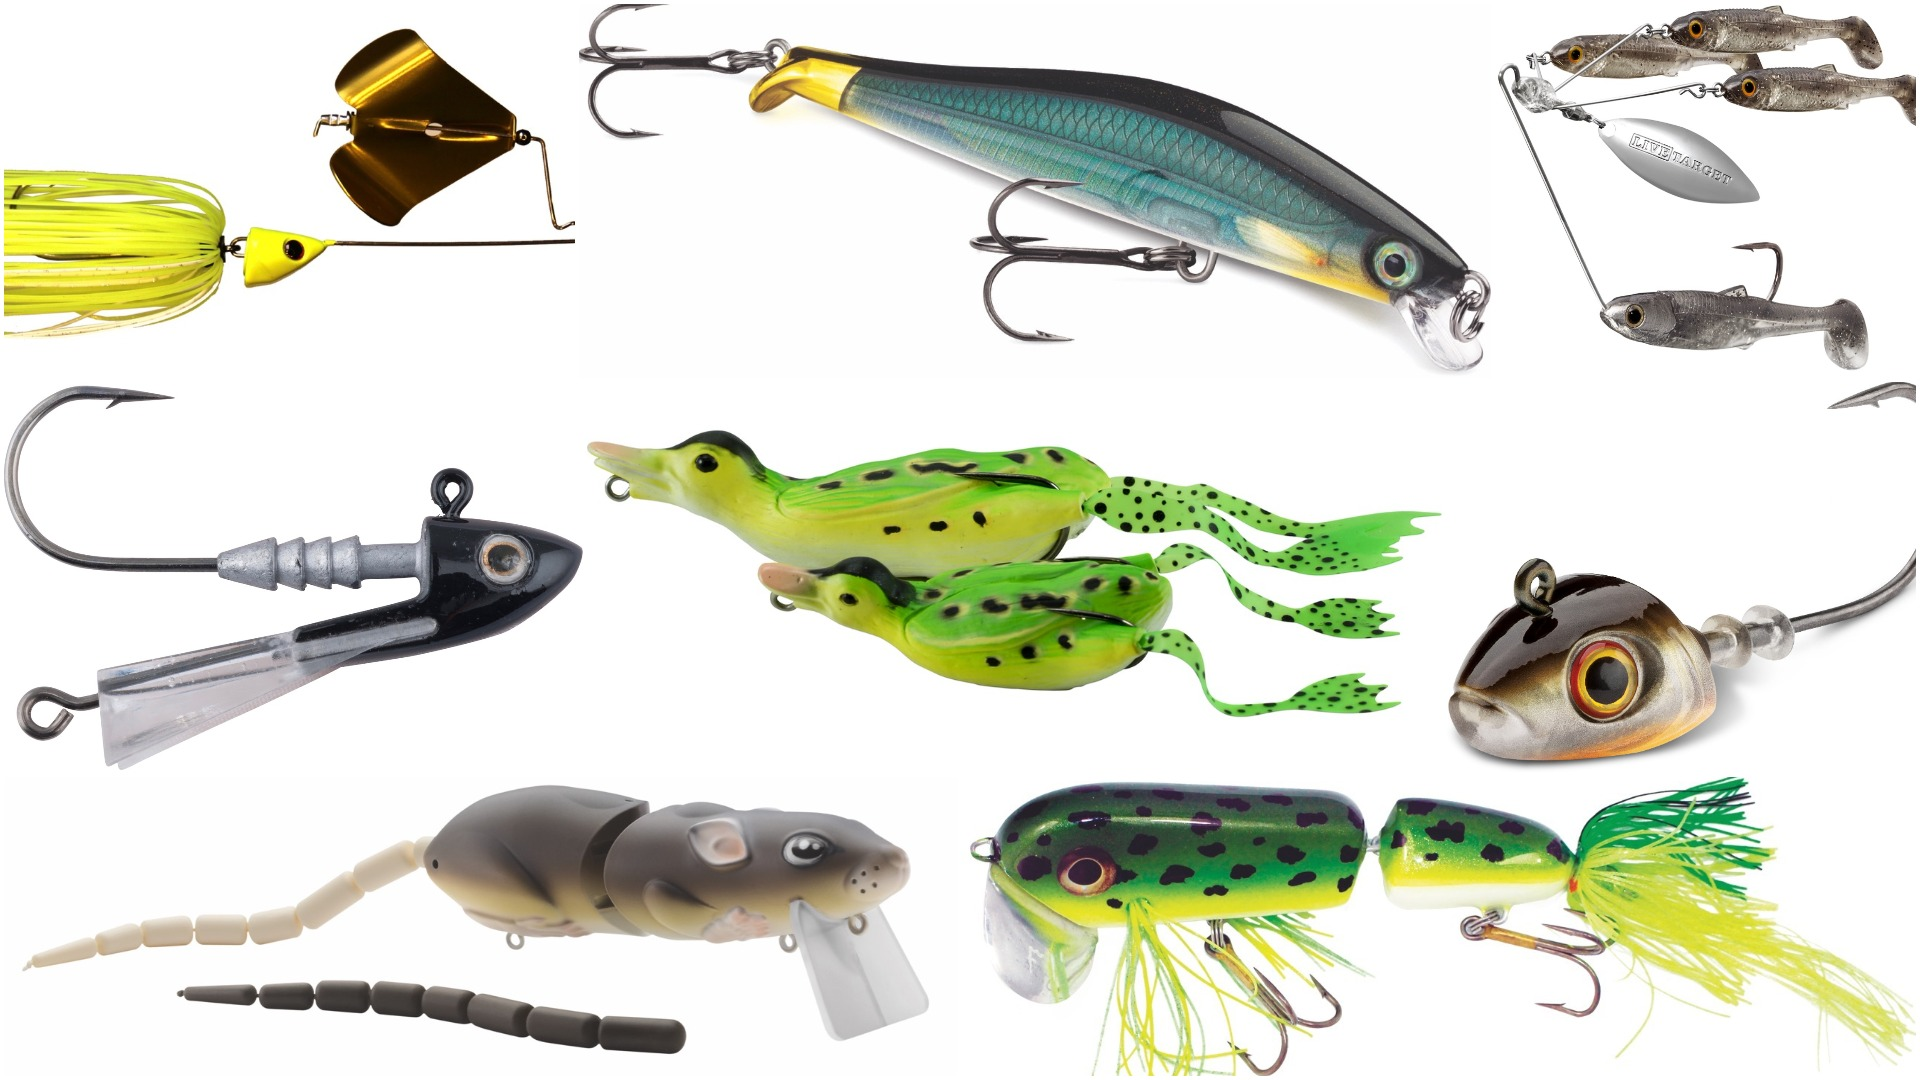 Tackle Week 2018: 14 New Lures for Walleye, Bass, Trout